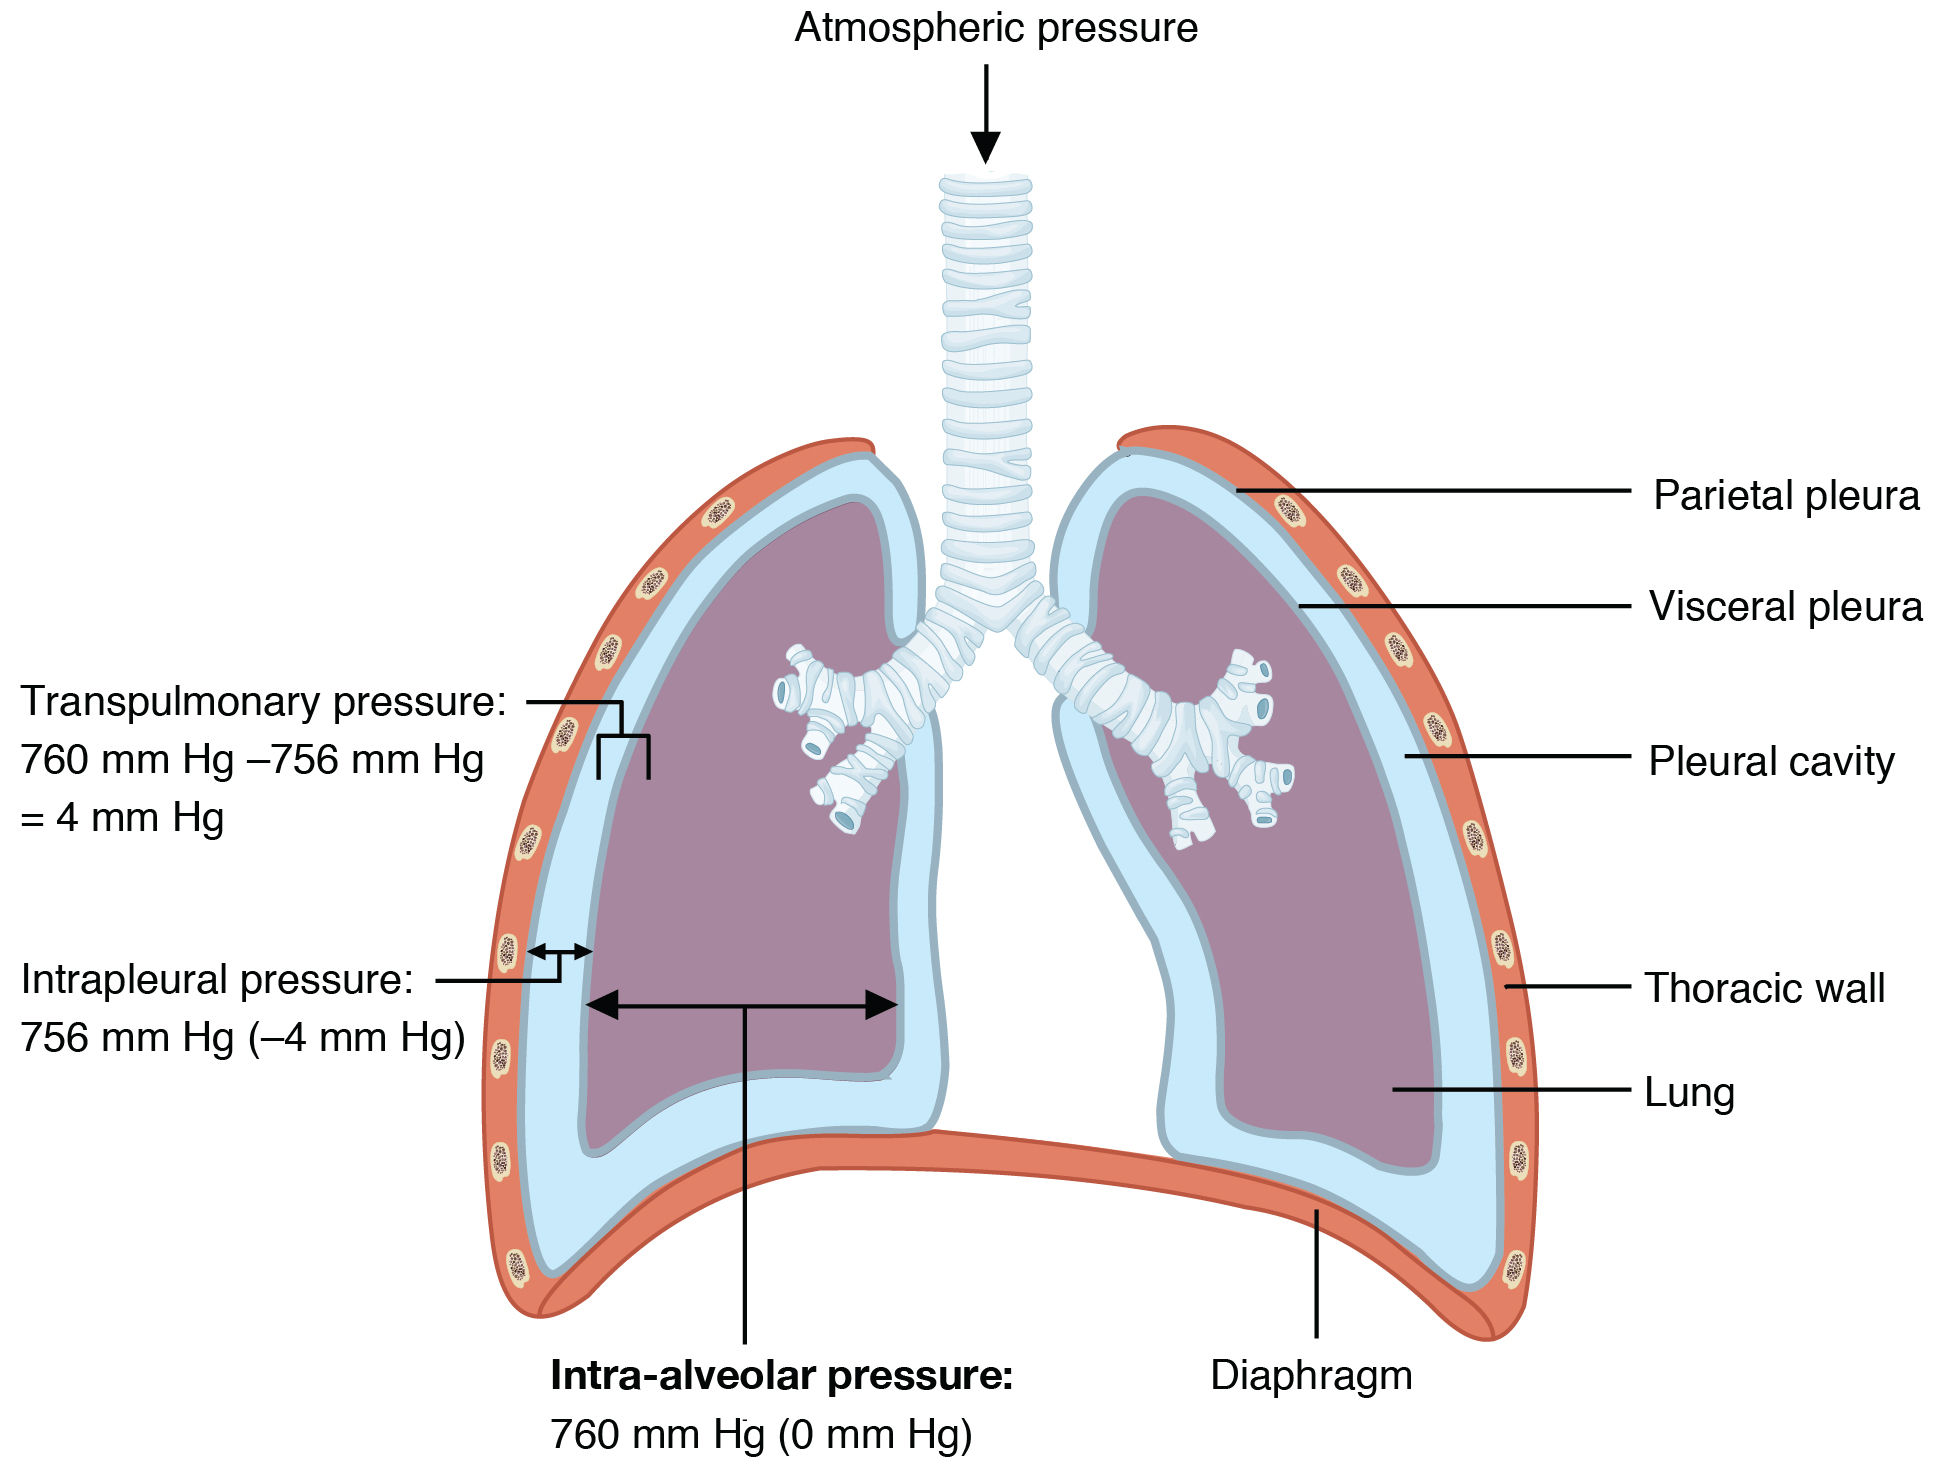 22.3 The Process of Breathing – Anatomy and Physiology